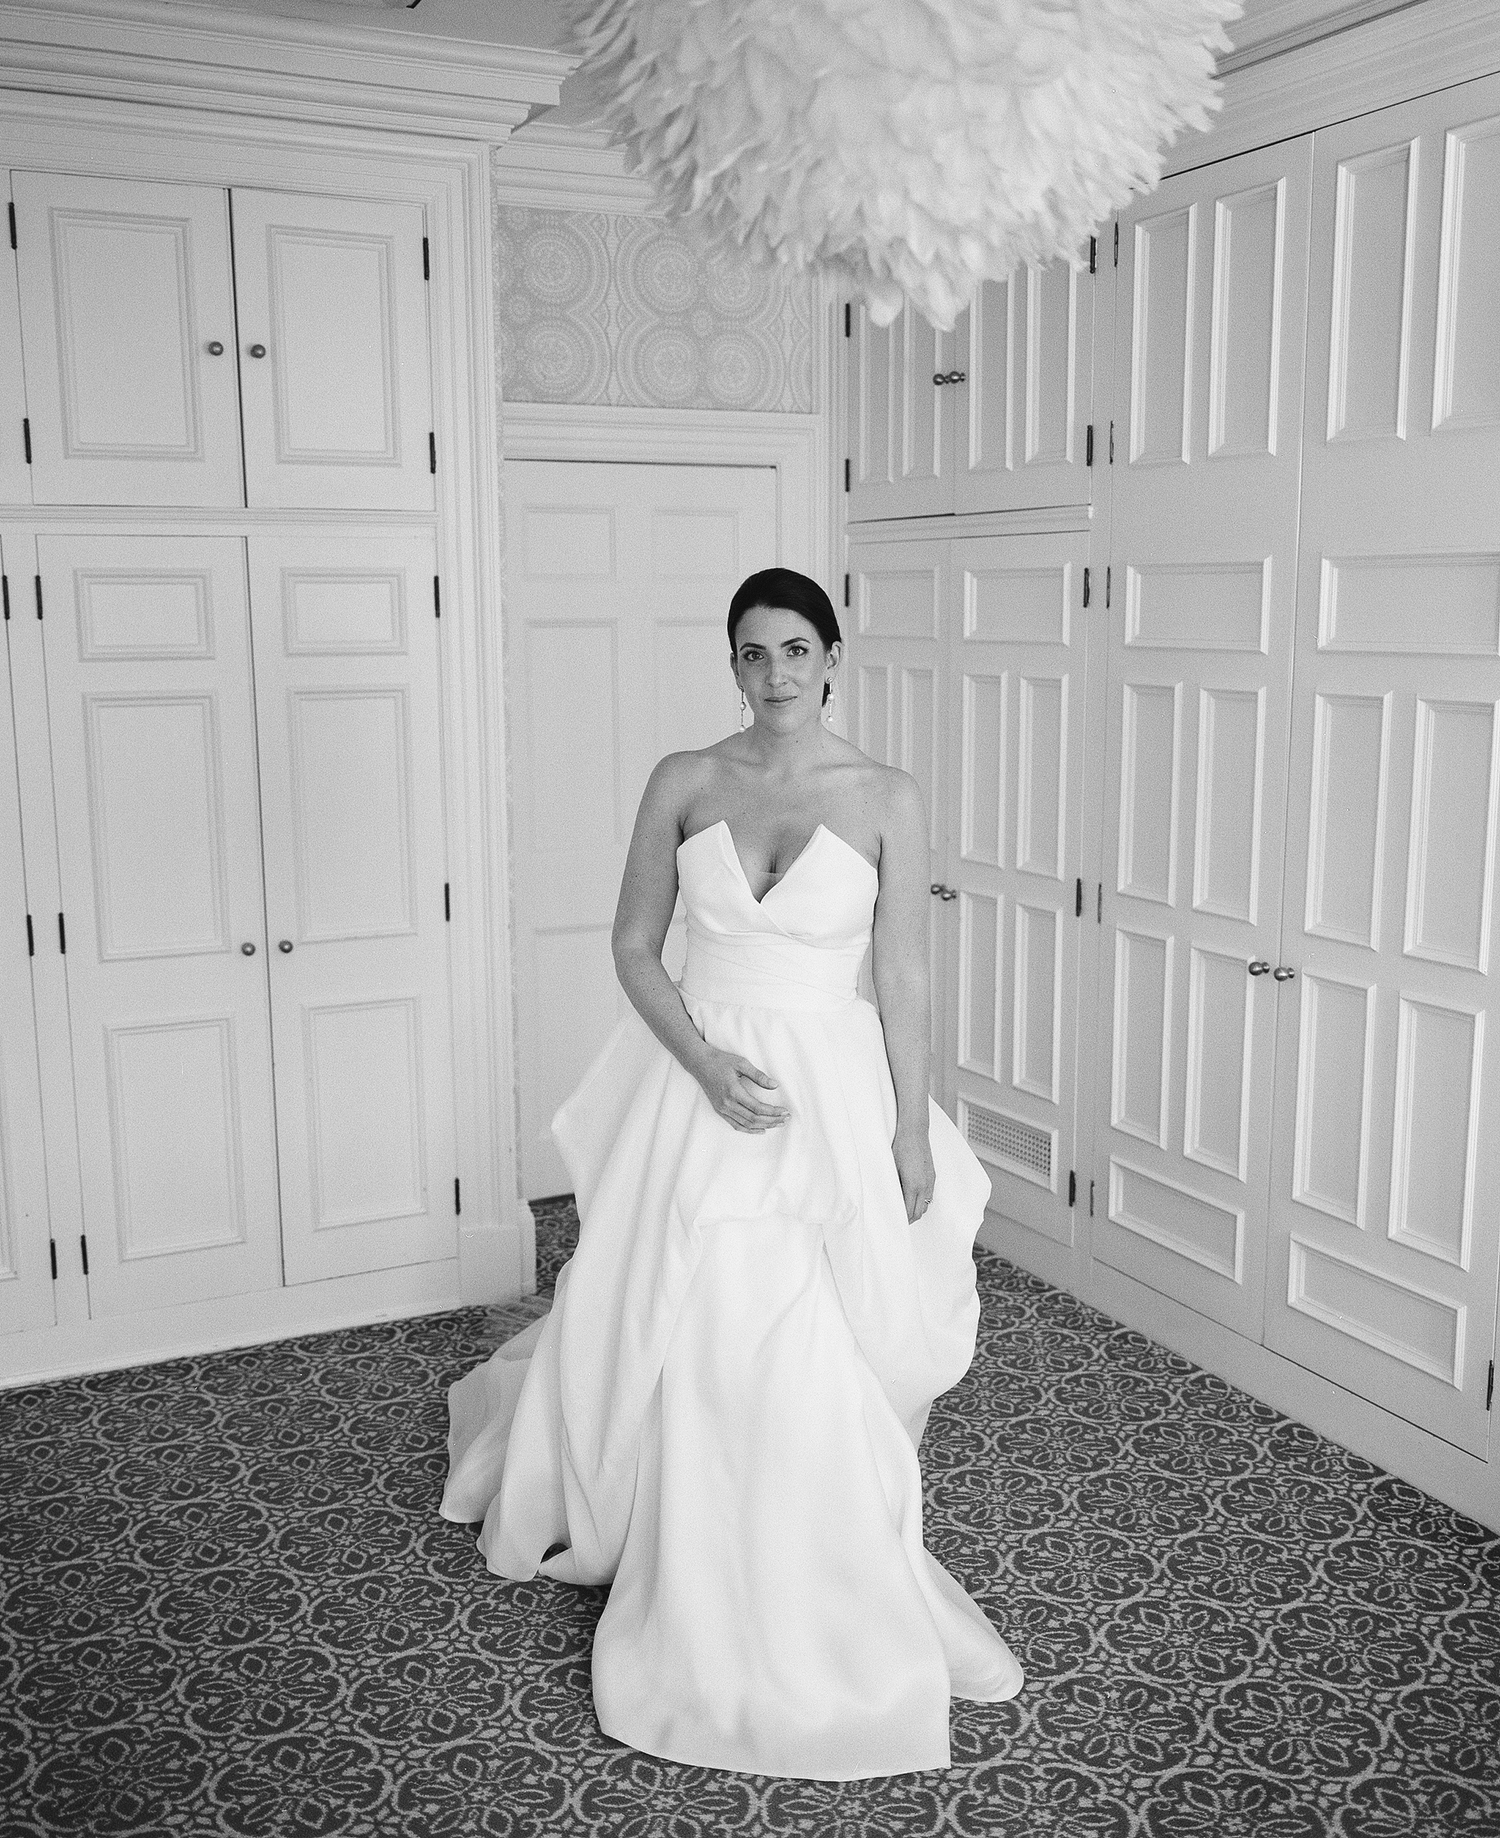 Graydon-Hall-wedding-photography-on-analog-film-Bride-stunning-portrait.jpg